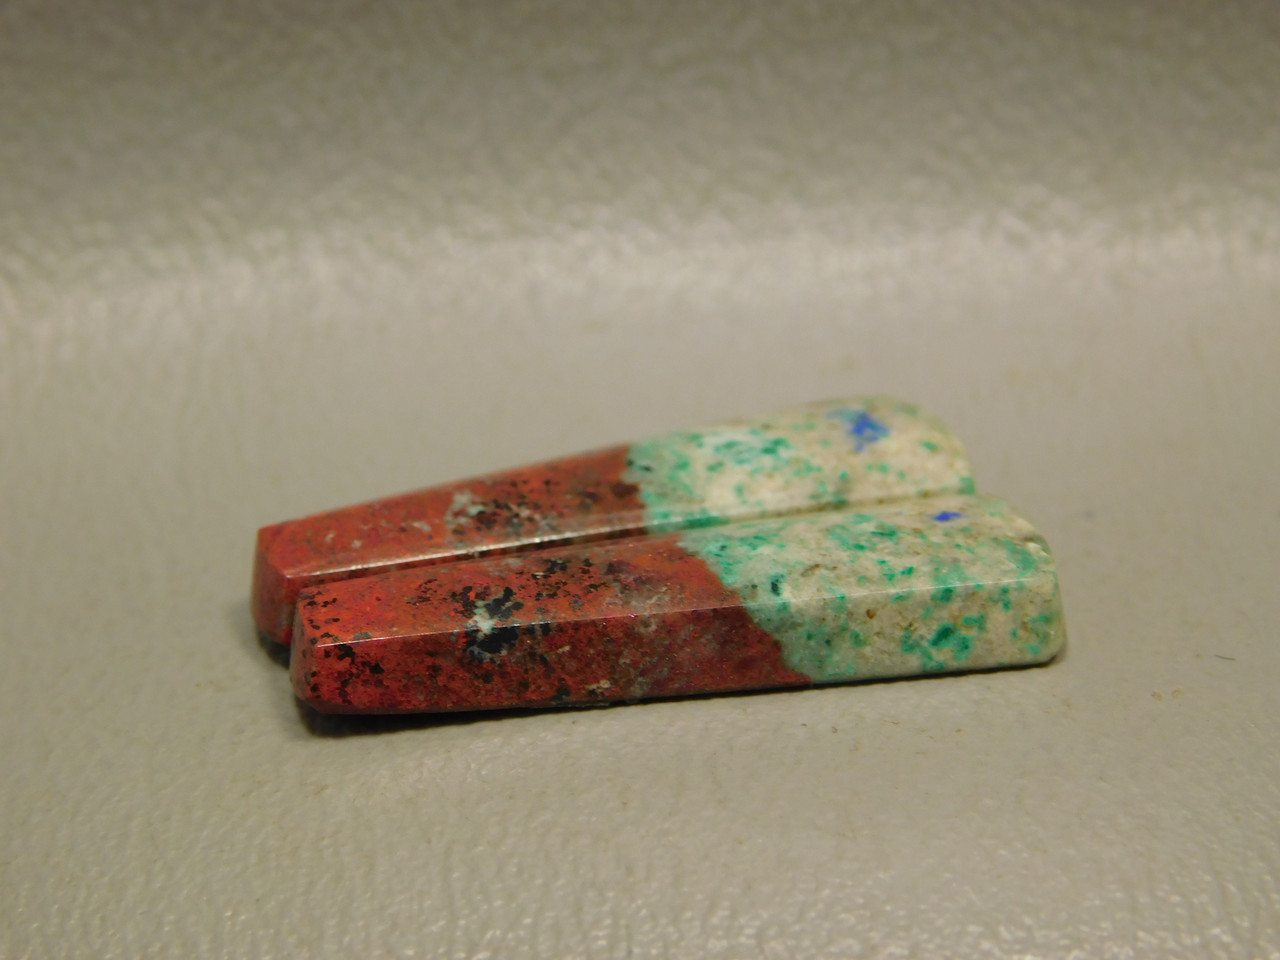 Matched Pair Cabochons Sonoran Sunset Chrysocolla Natural Stones #32